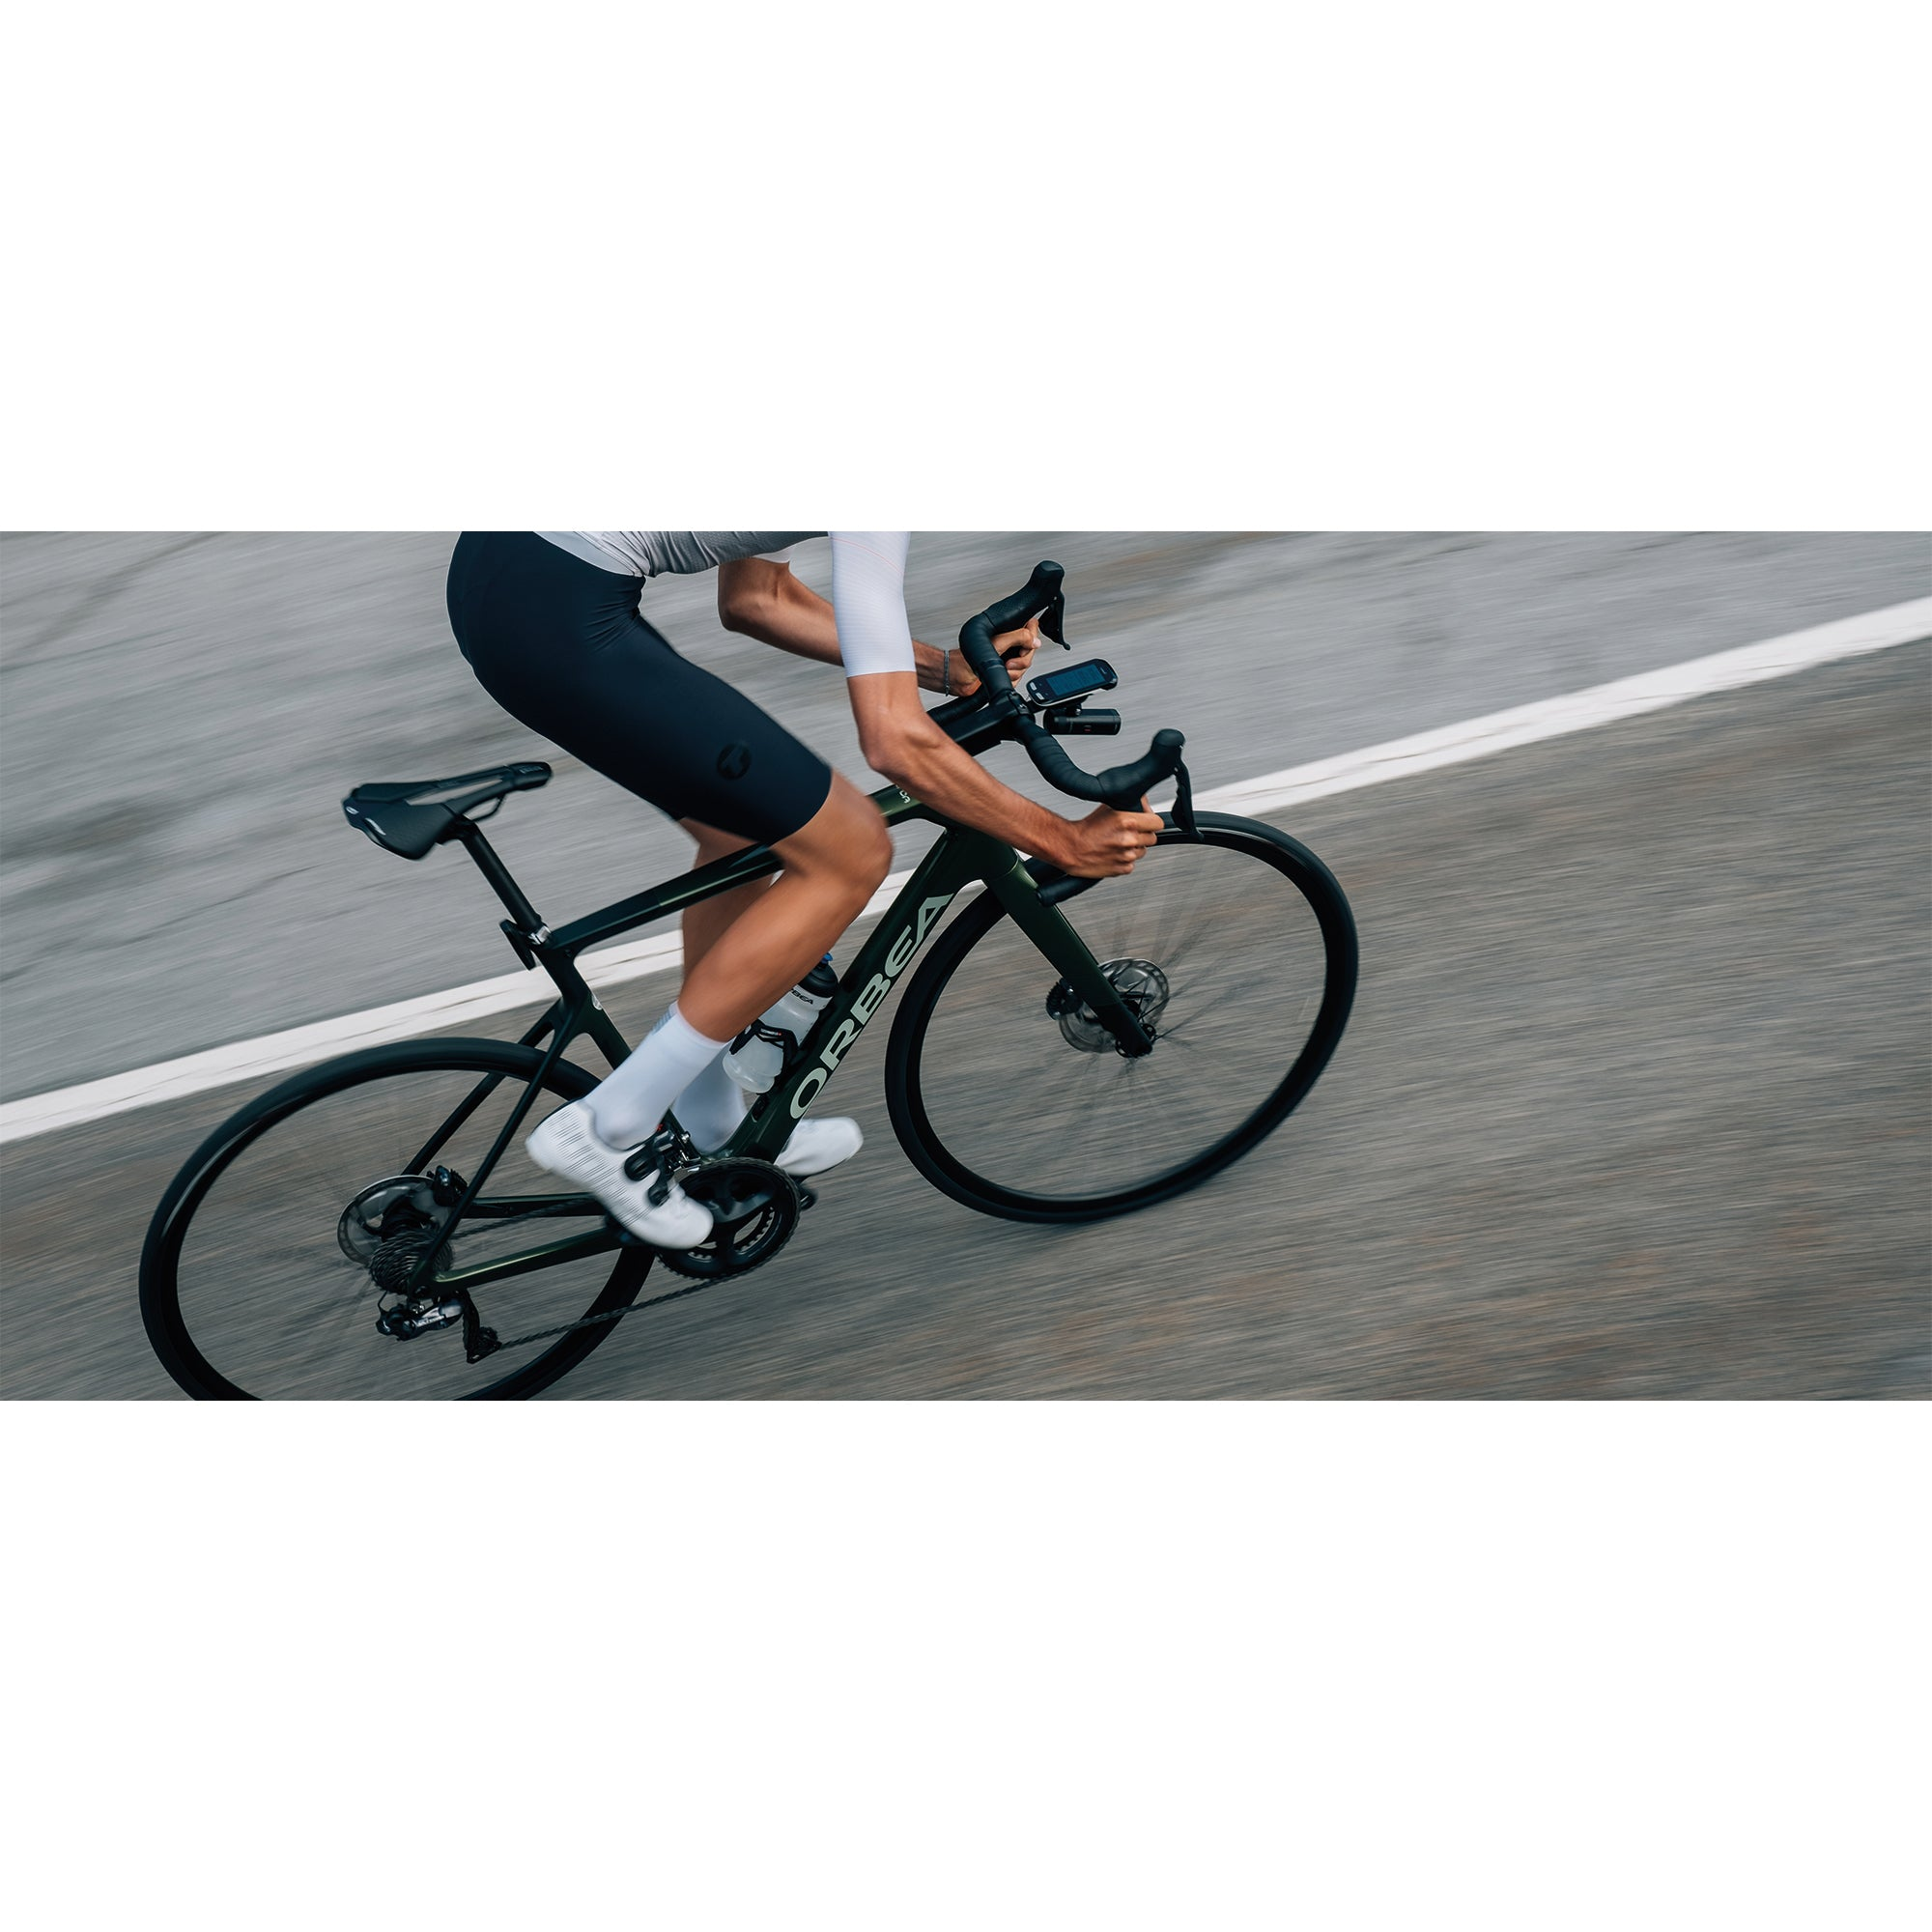 Orbea Orca M20i TEAM Road Bike